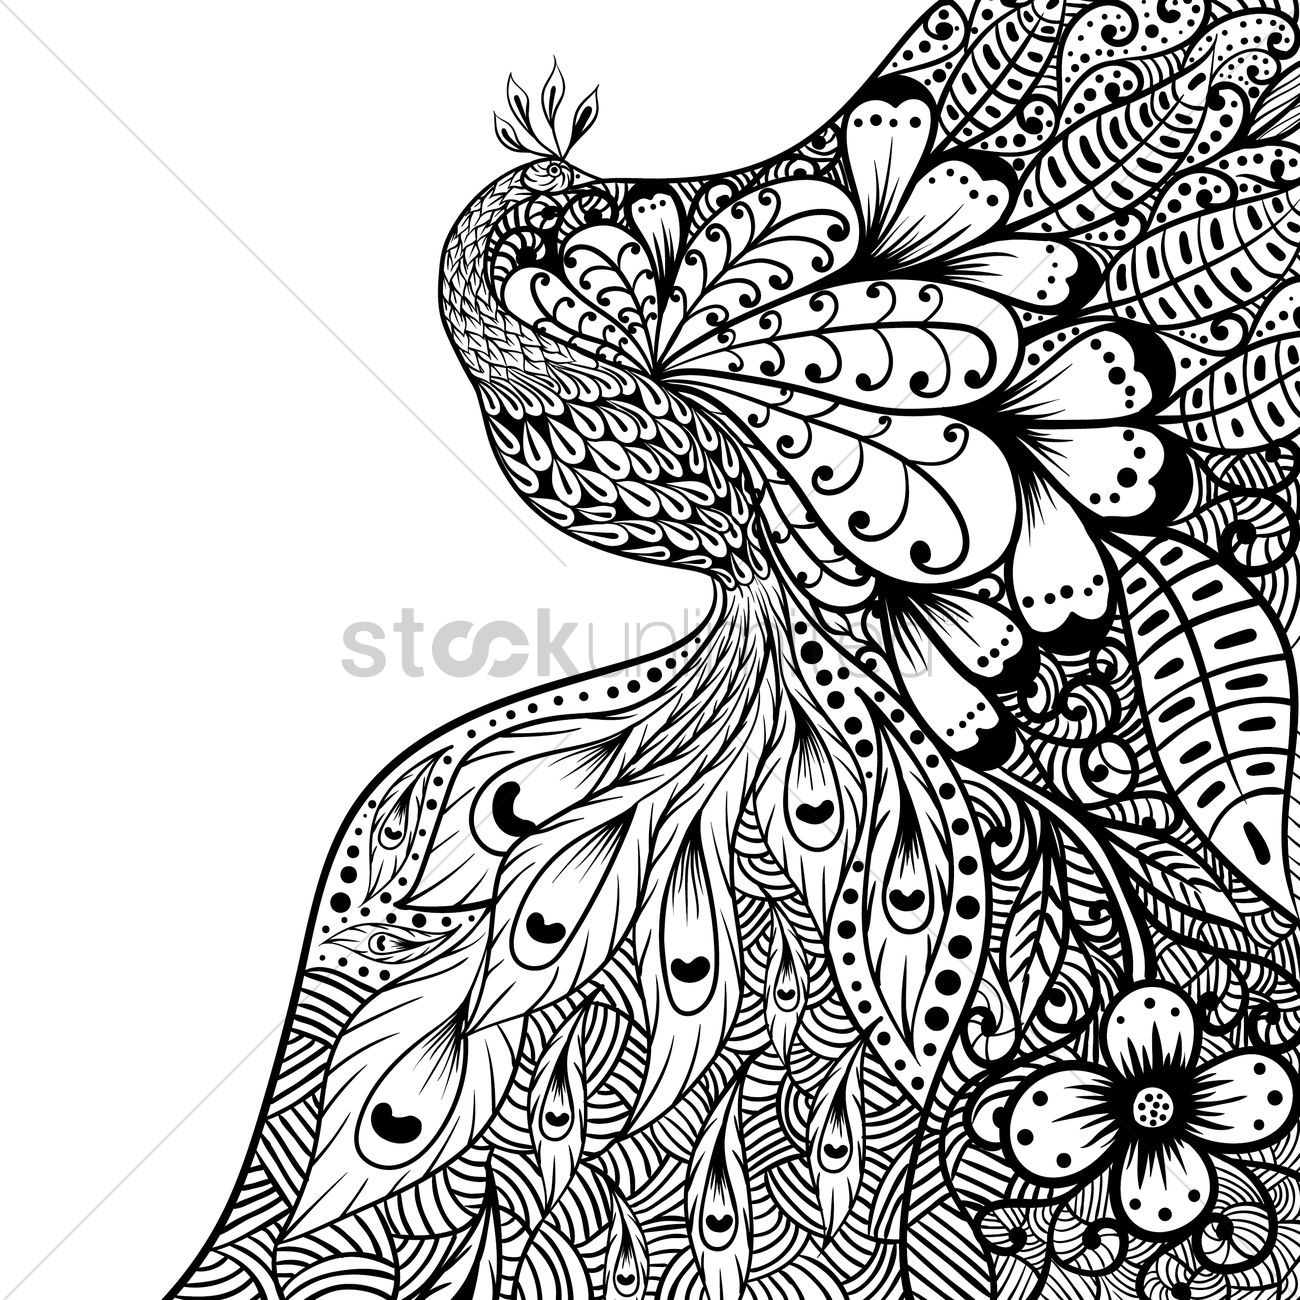 Intricate peacock design vector graphic